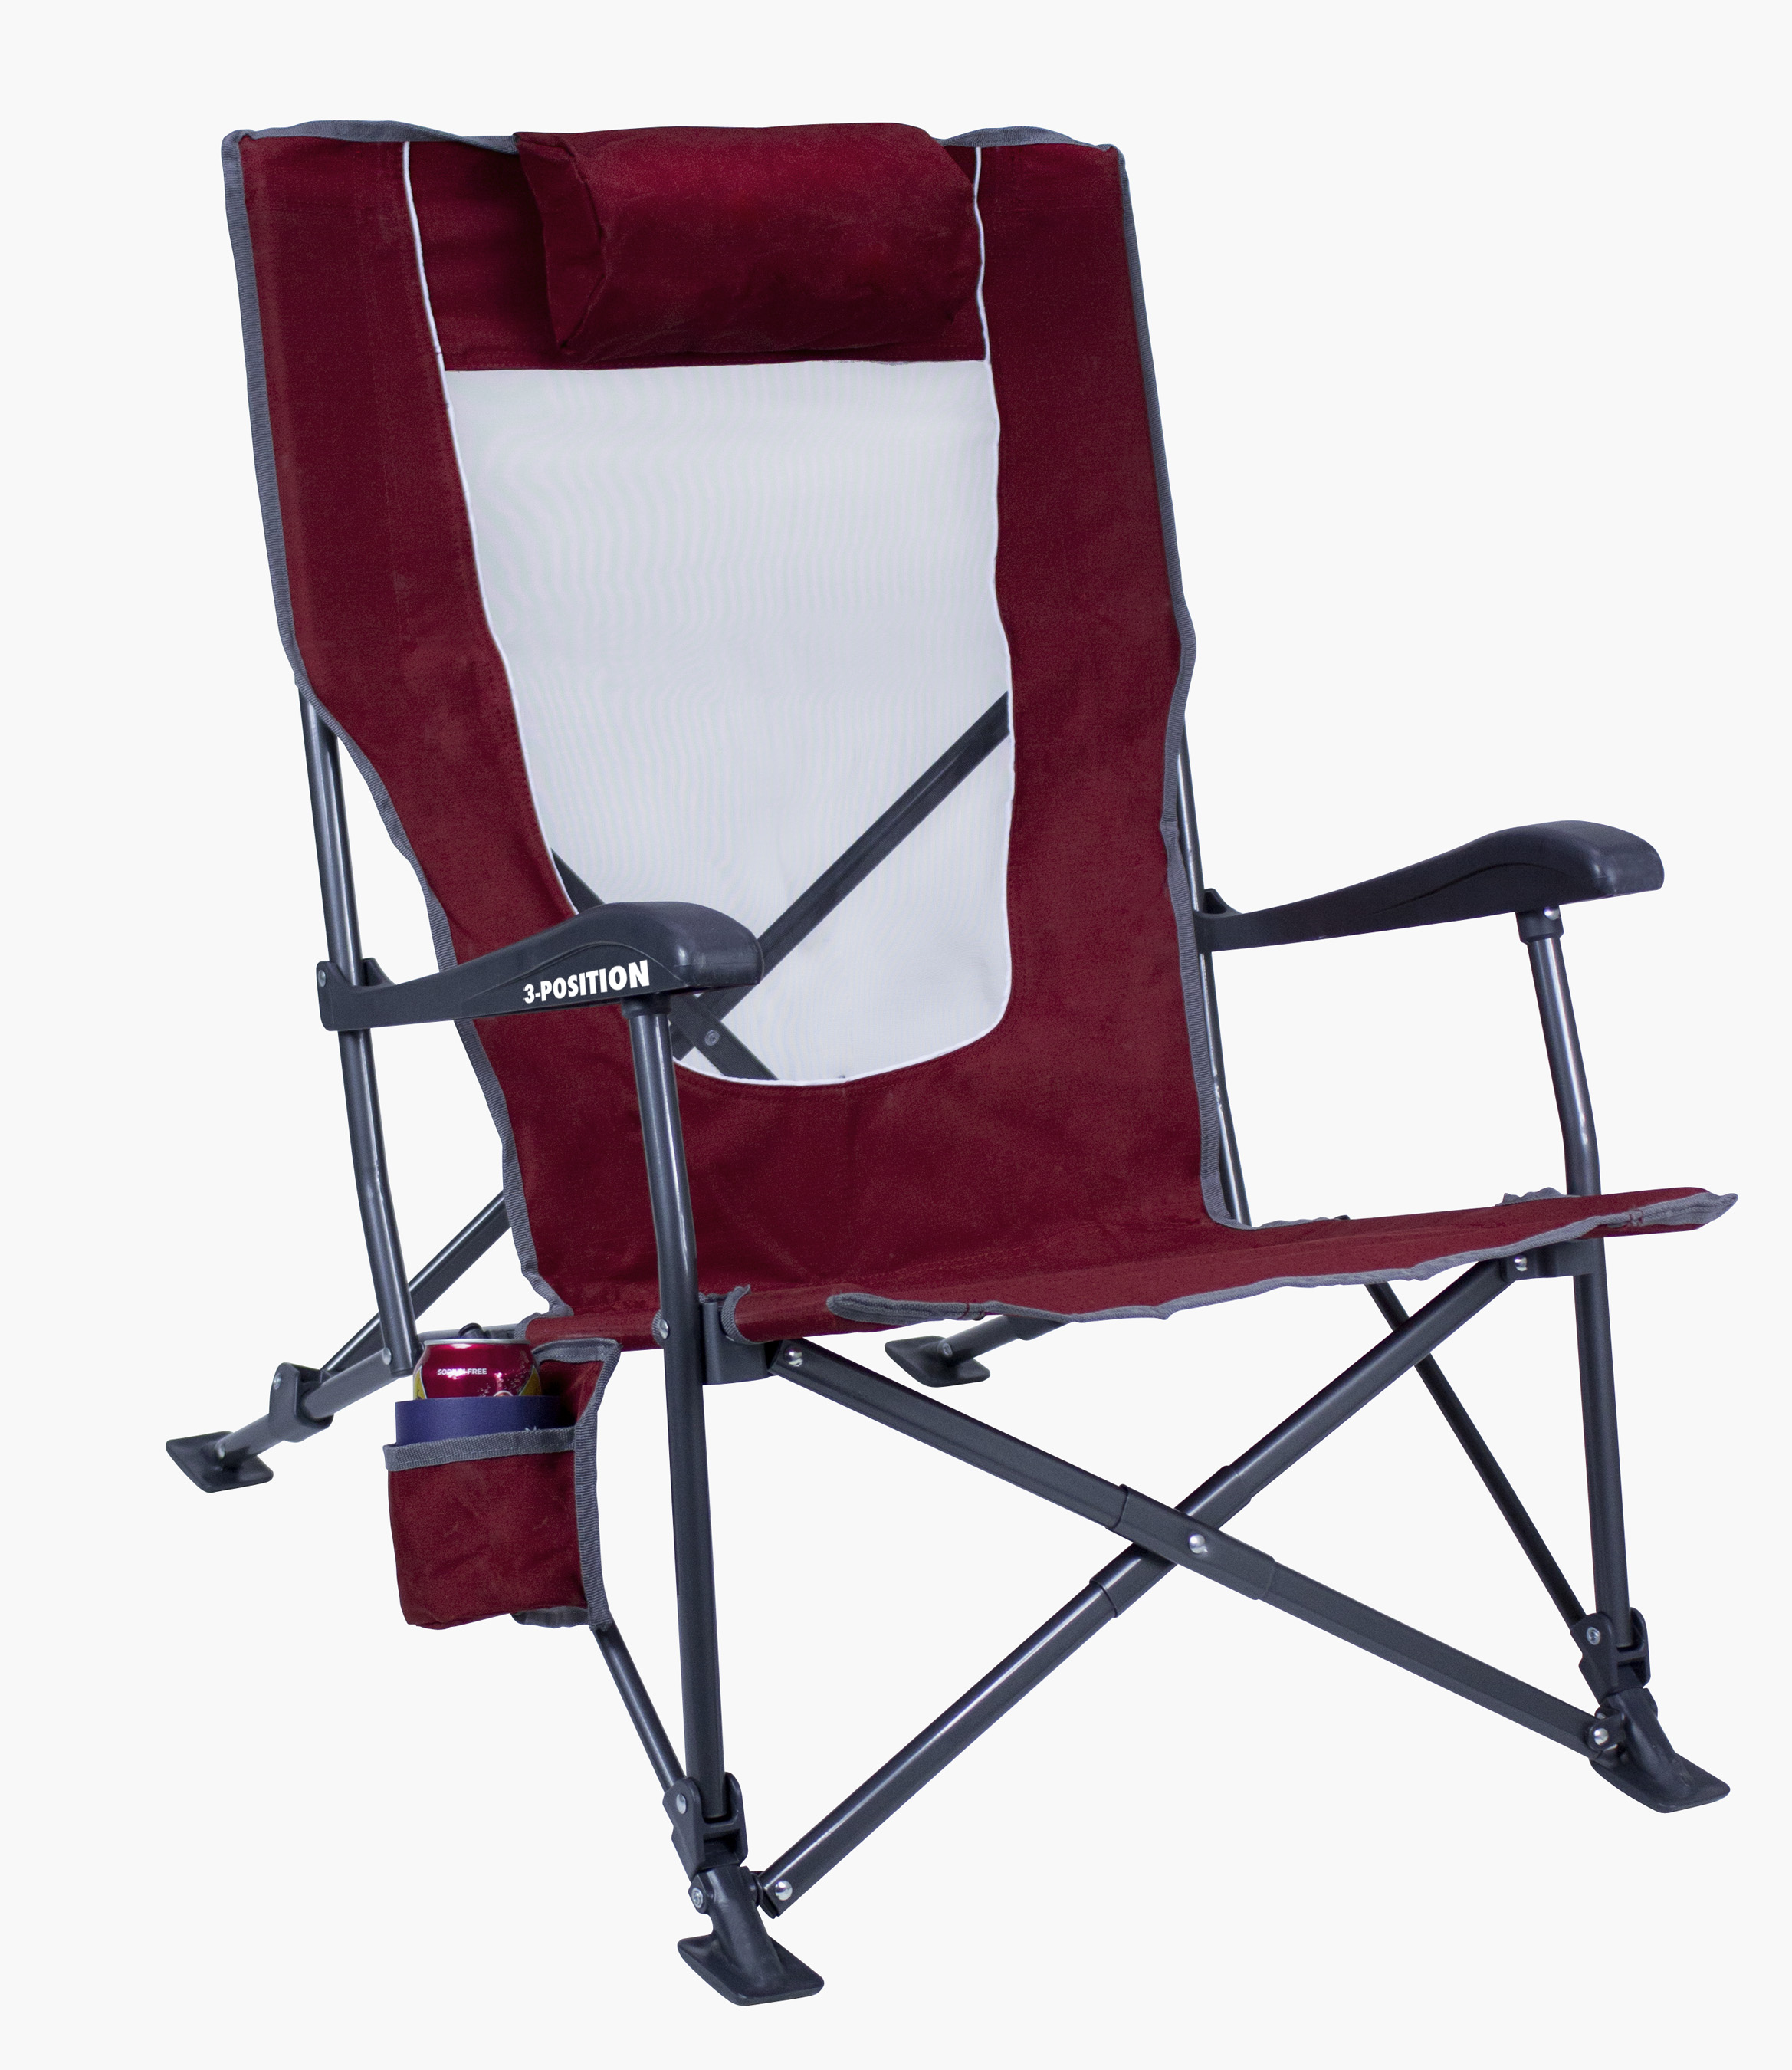 Folding Lawn Chairs for Concerts and Events